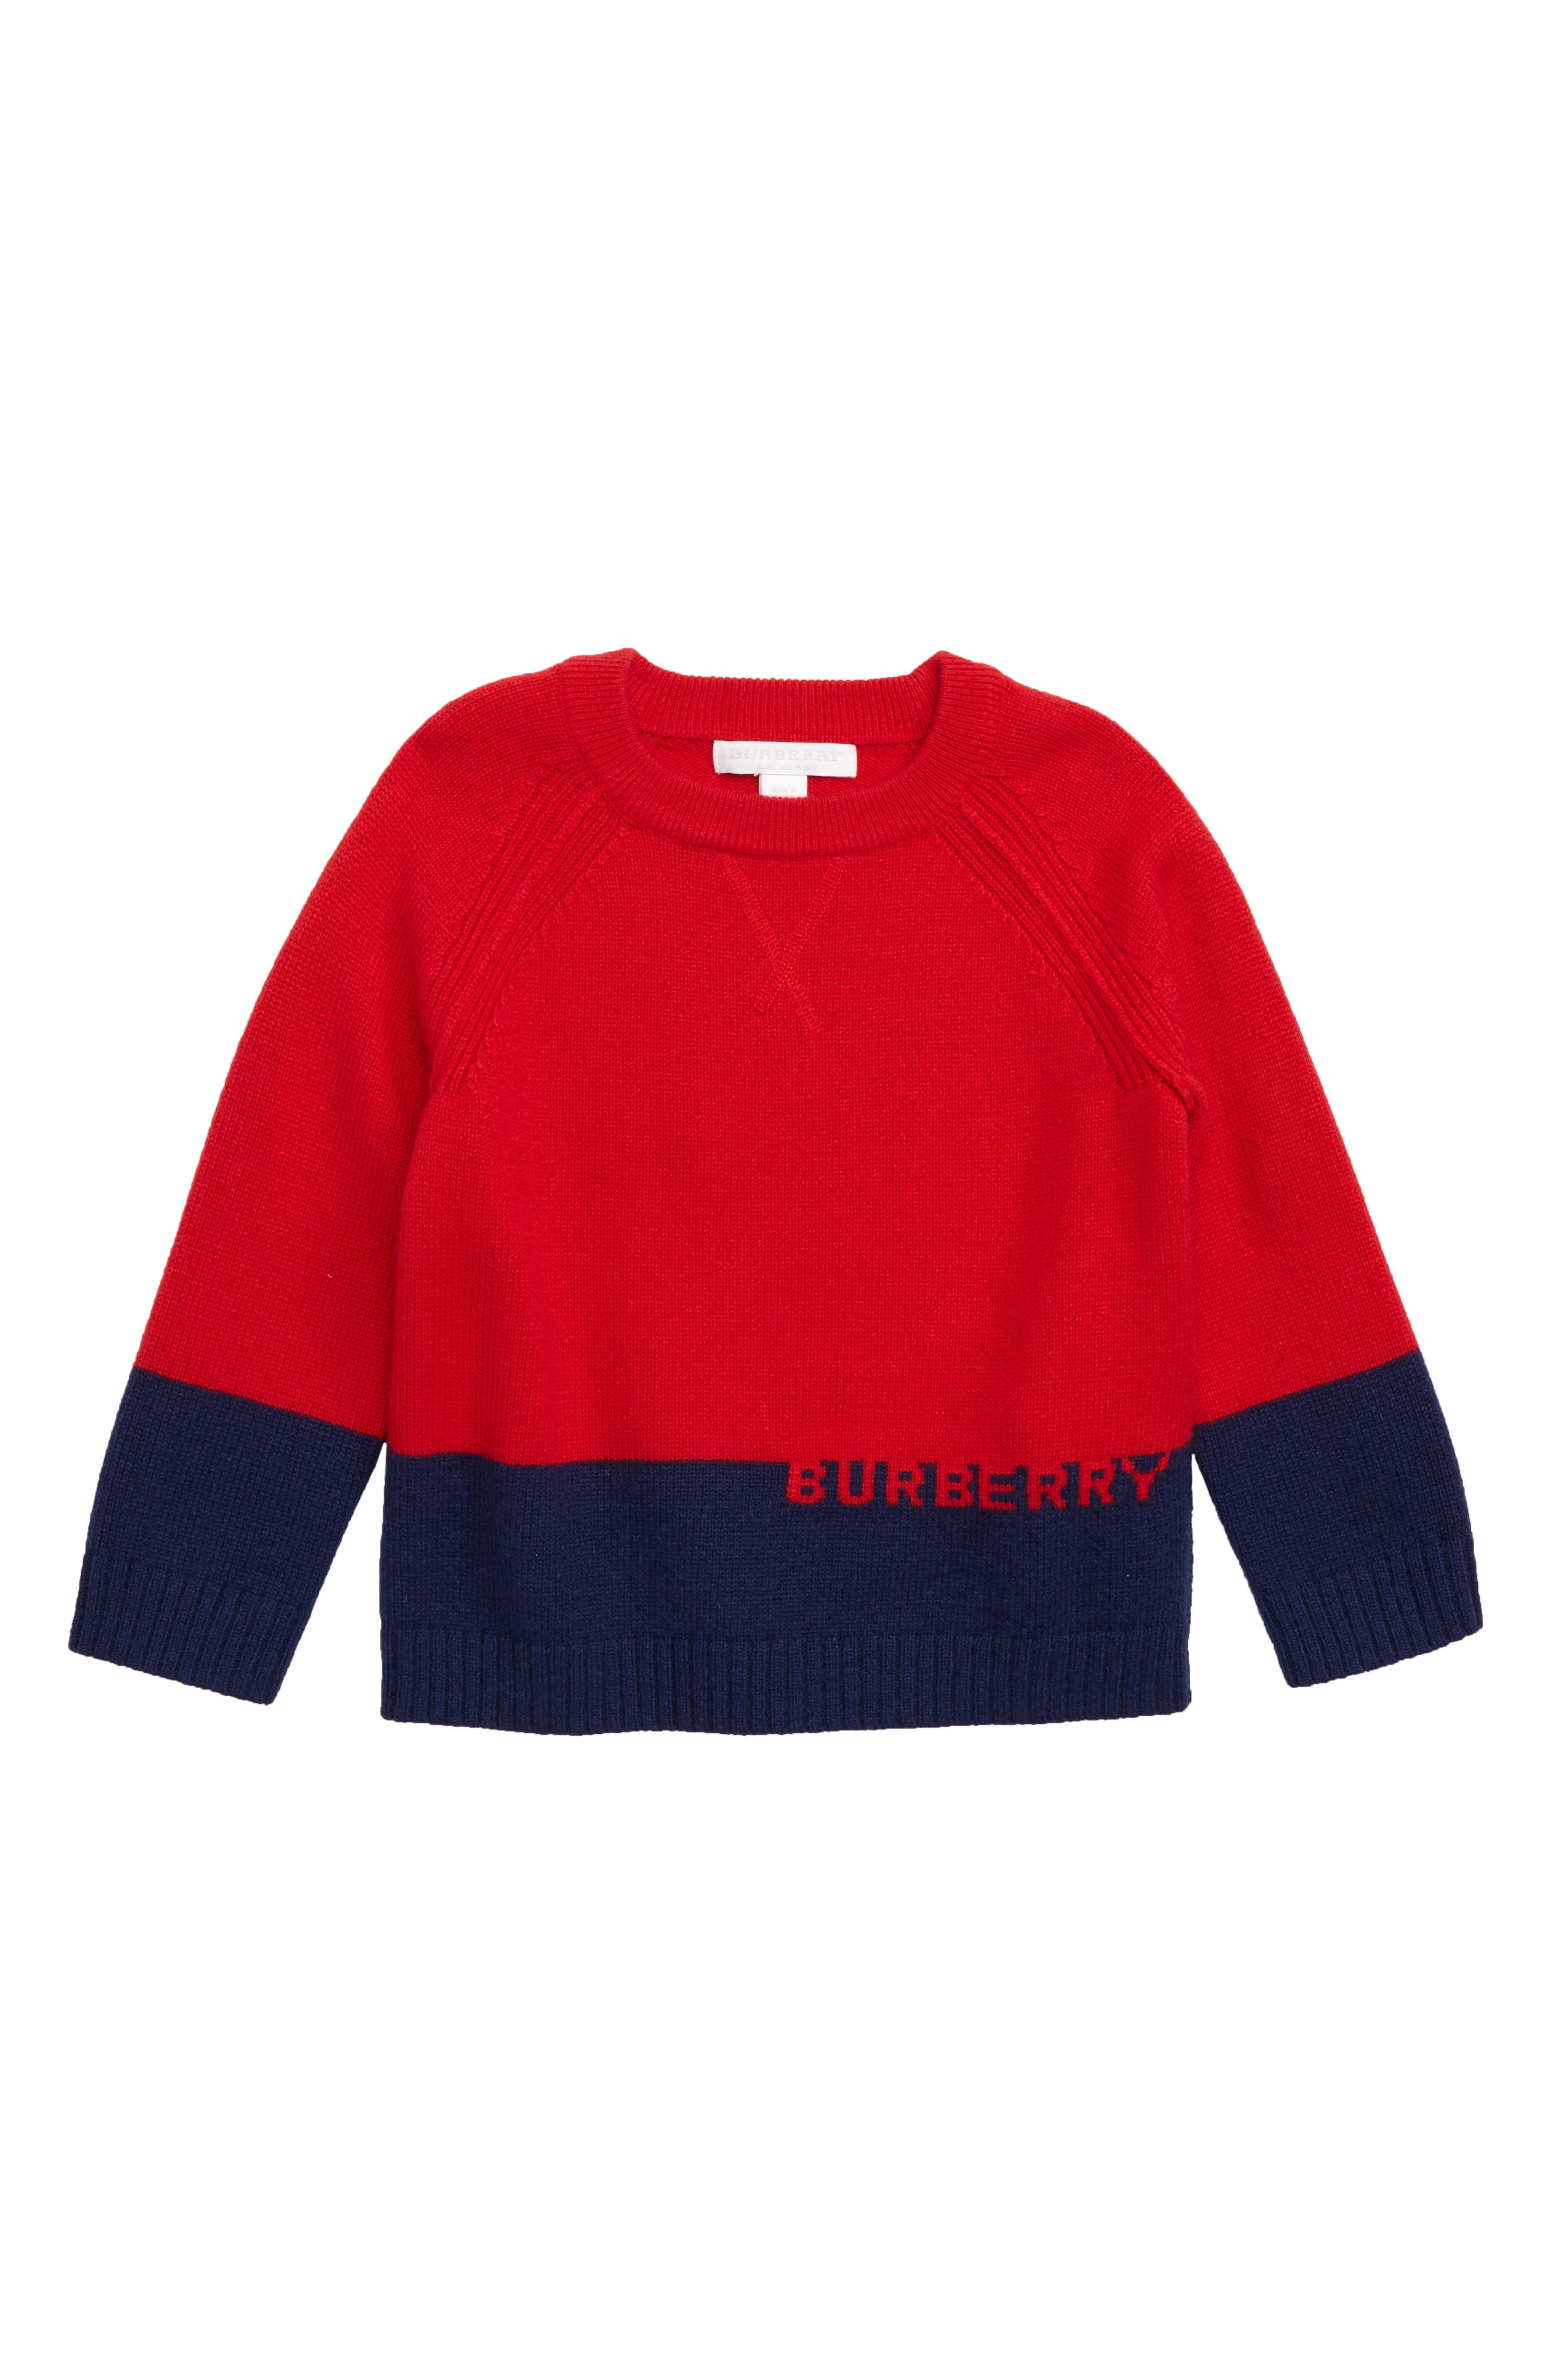 Logo Intarsia Pullover Sweater,                             Main thumbnail 1, color,                             BRIGHT RED